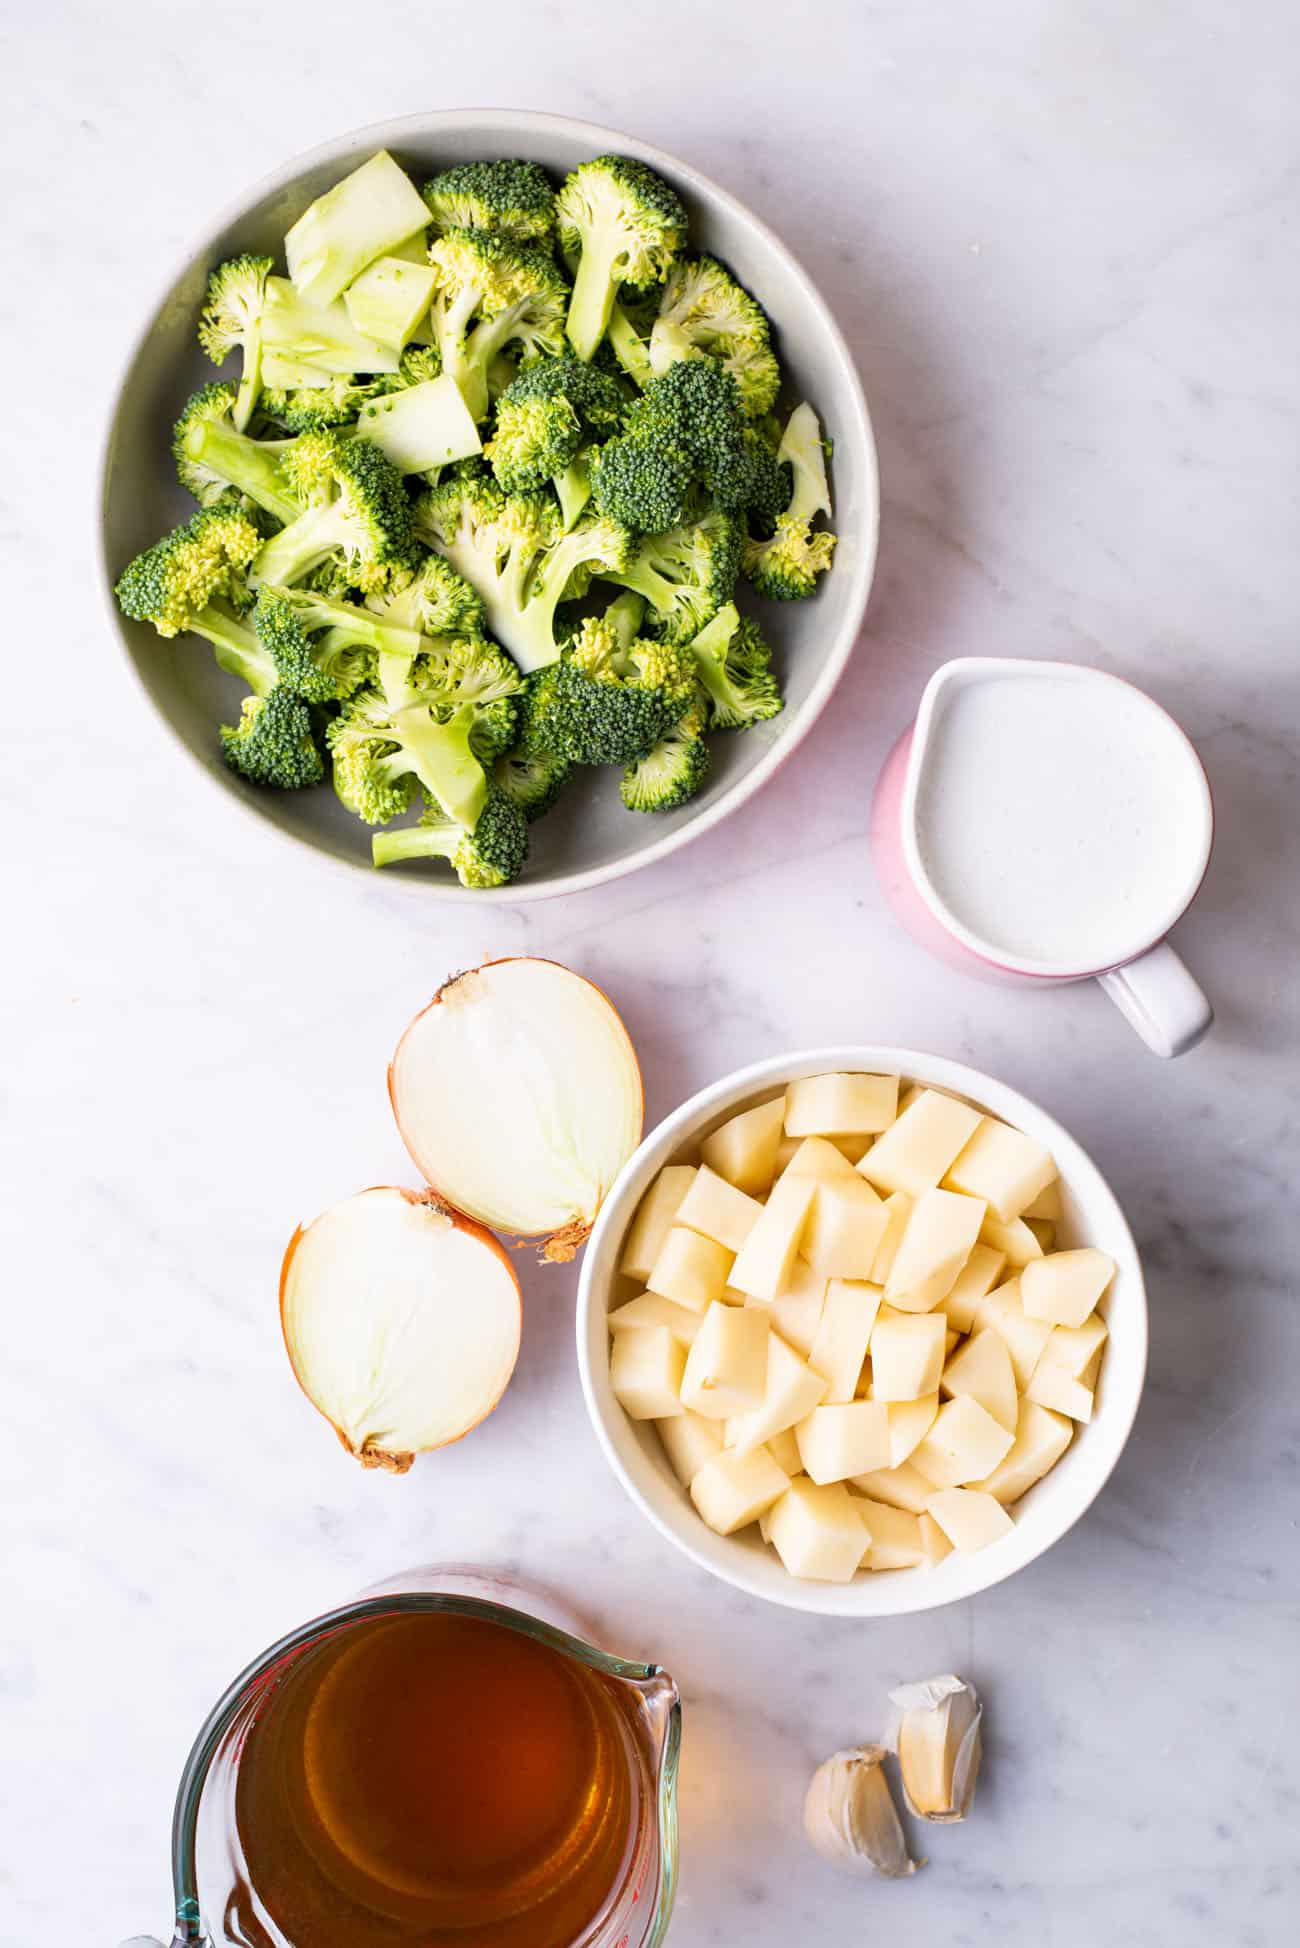 Ingredients gathered to make creamy broccoli soup: broccoli, onion, potato, almond milk, and vegetable broth